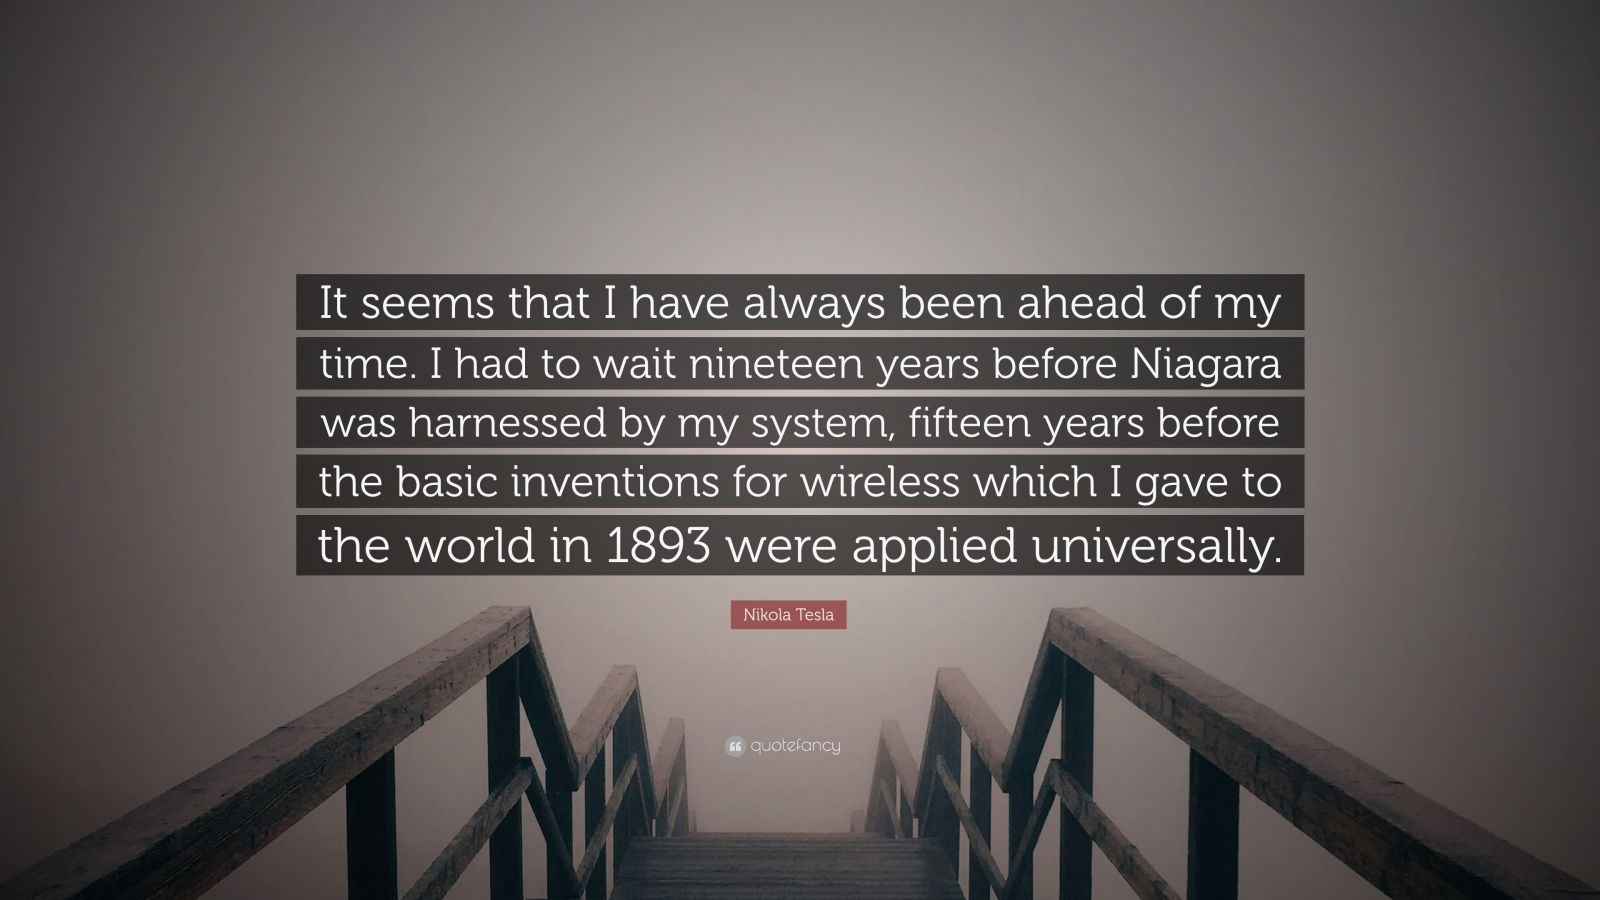 """Nikola Tesla Quote: """"It seems that I have always been ahead of my time. I had to wait nineteen years before Niagara was harnessed by my system, fifteen years before the basic inventions for wireless which I gave to the world in 1893 were applied universally."""""""